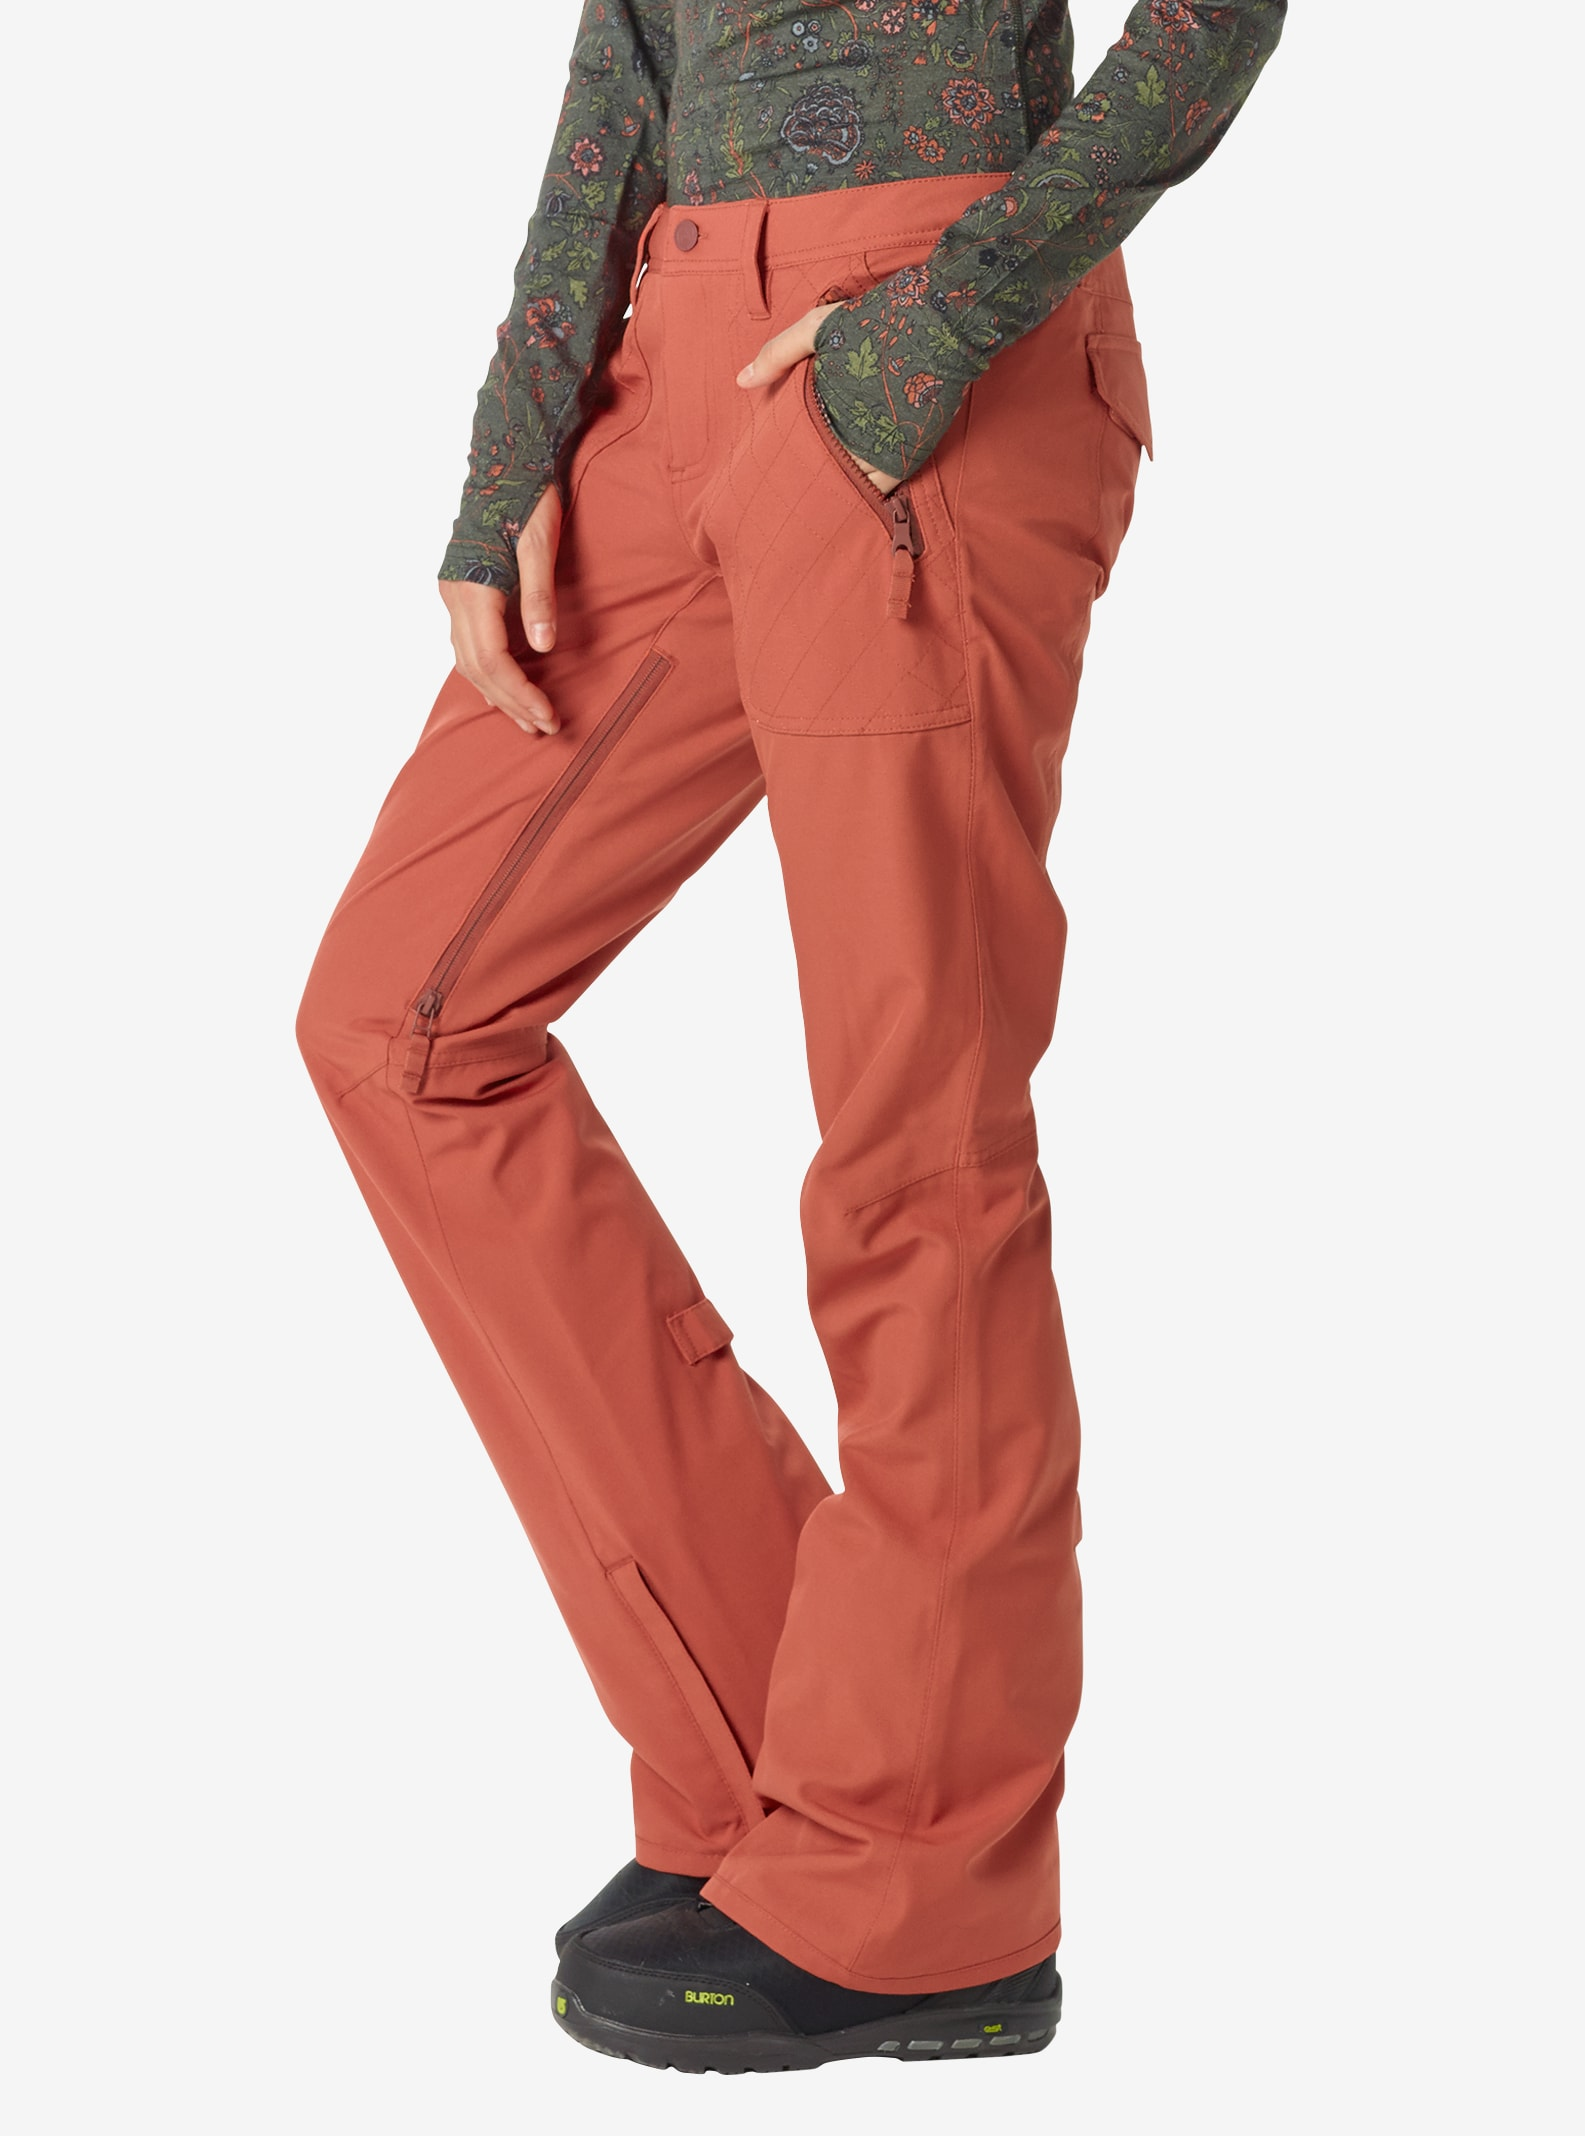 Women's Burton Vida Pant shown in Persimmon